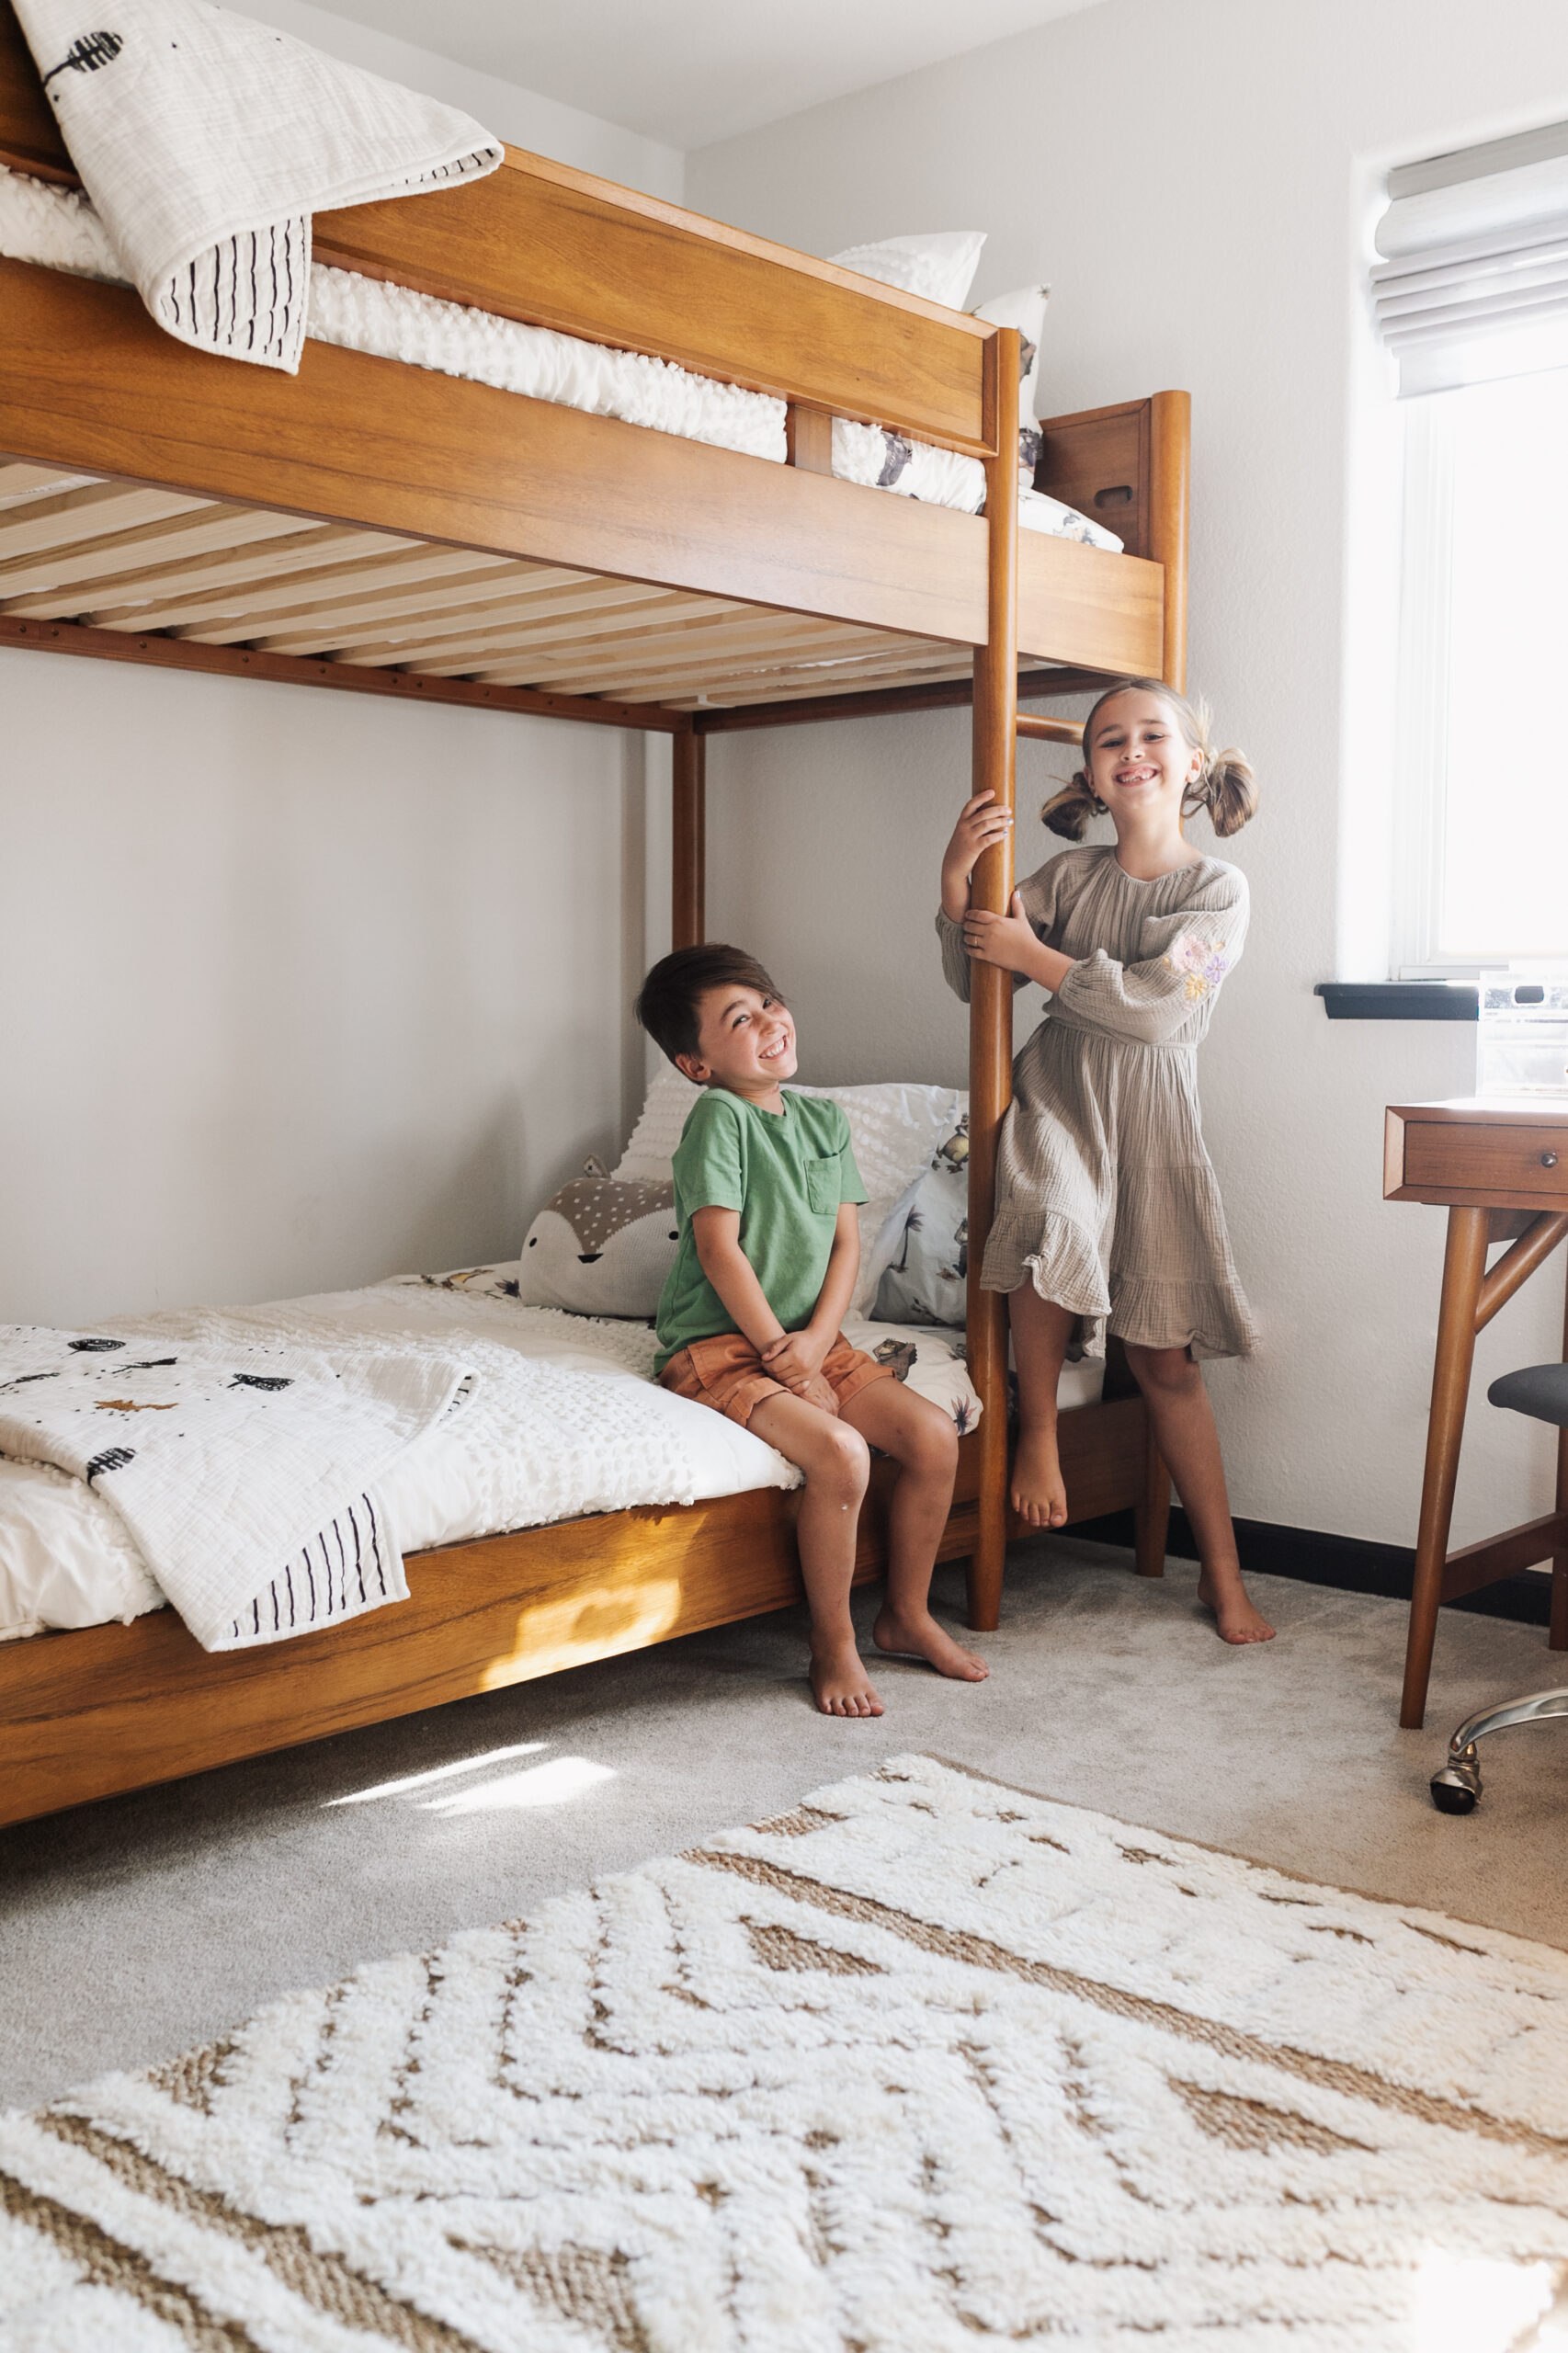 so excited for their new modern mountain bunk room!! #thelovedesignedlife #theldlhome #secondhome #mountainhome #modernmountain #bunkbeds #pbk